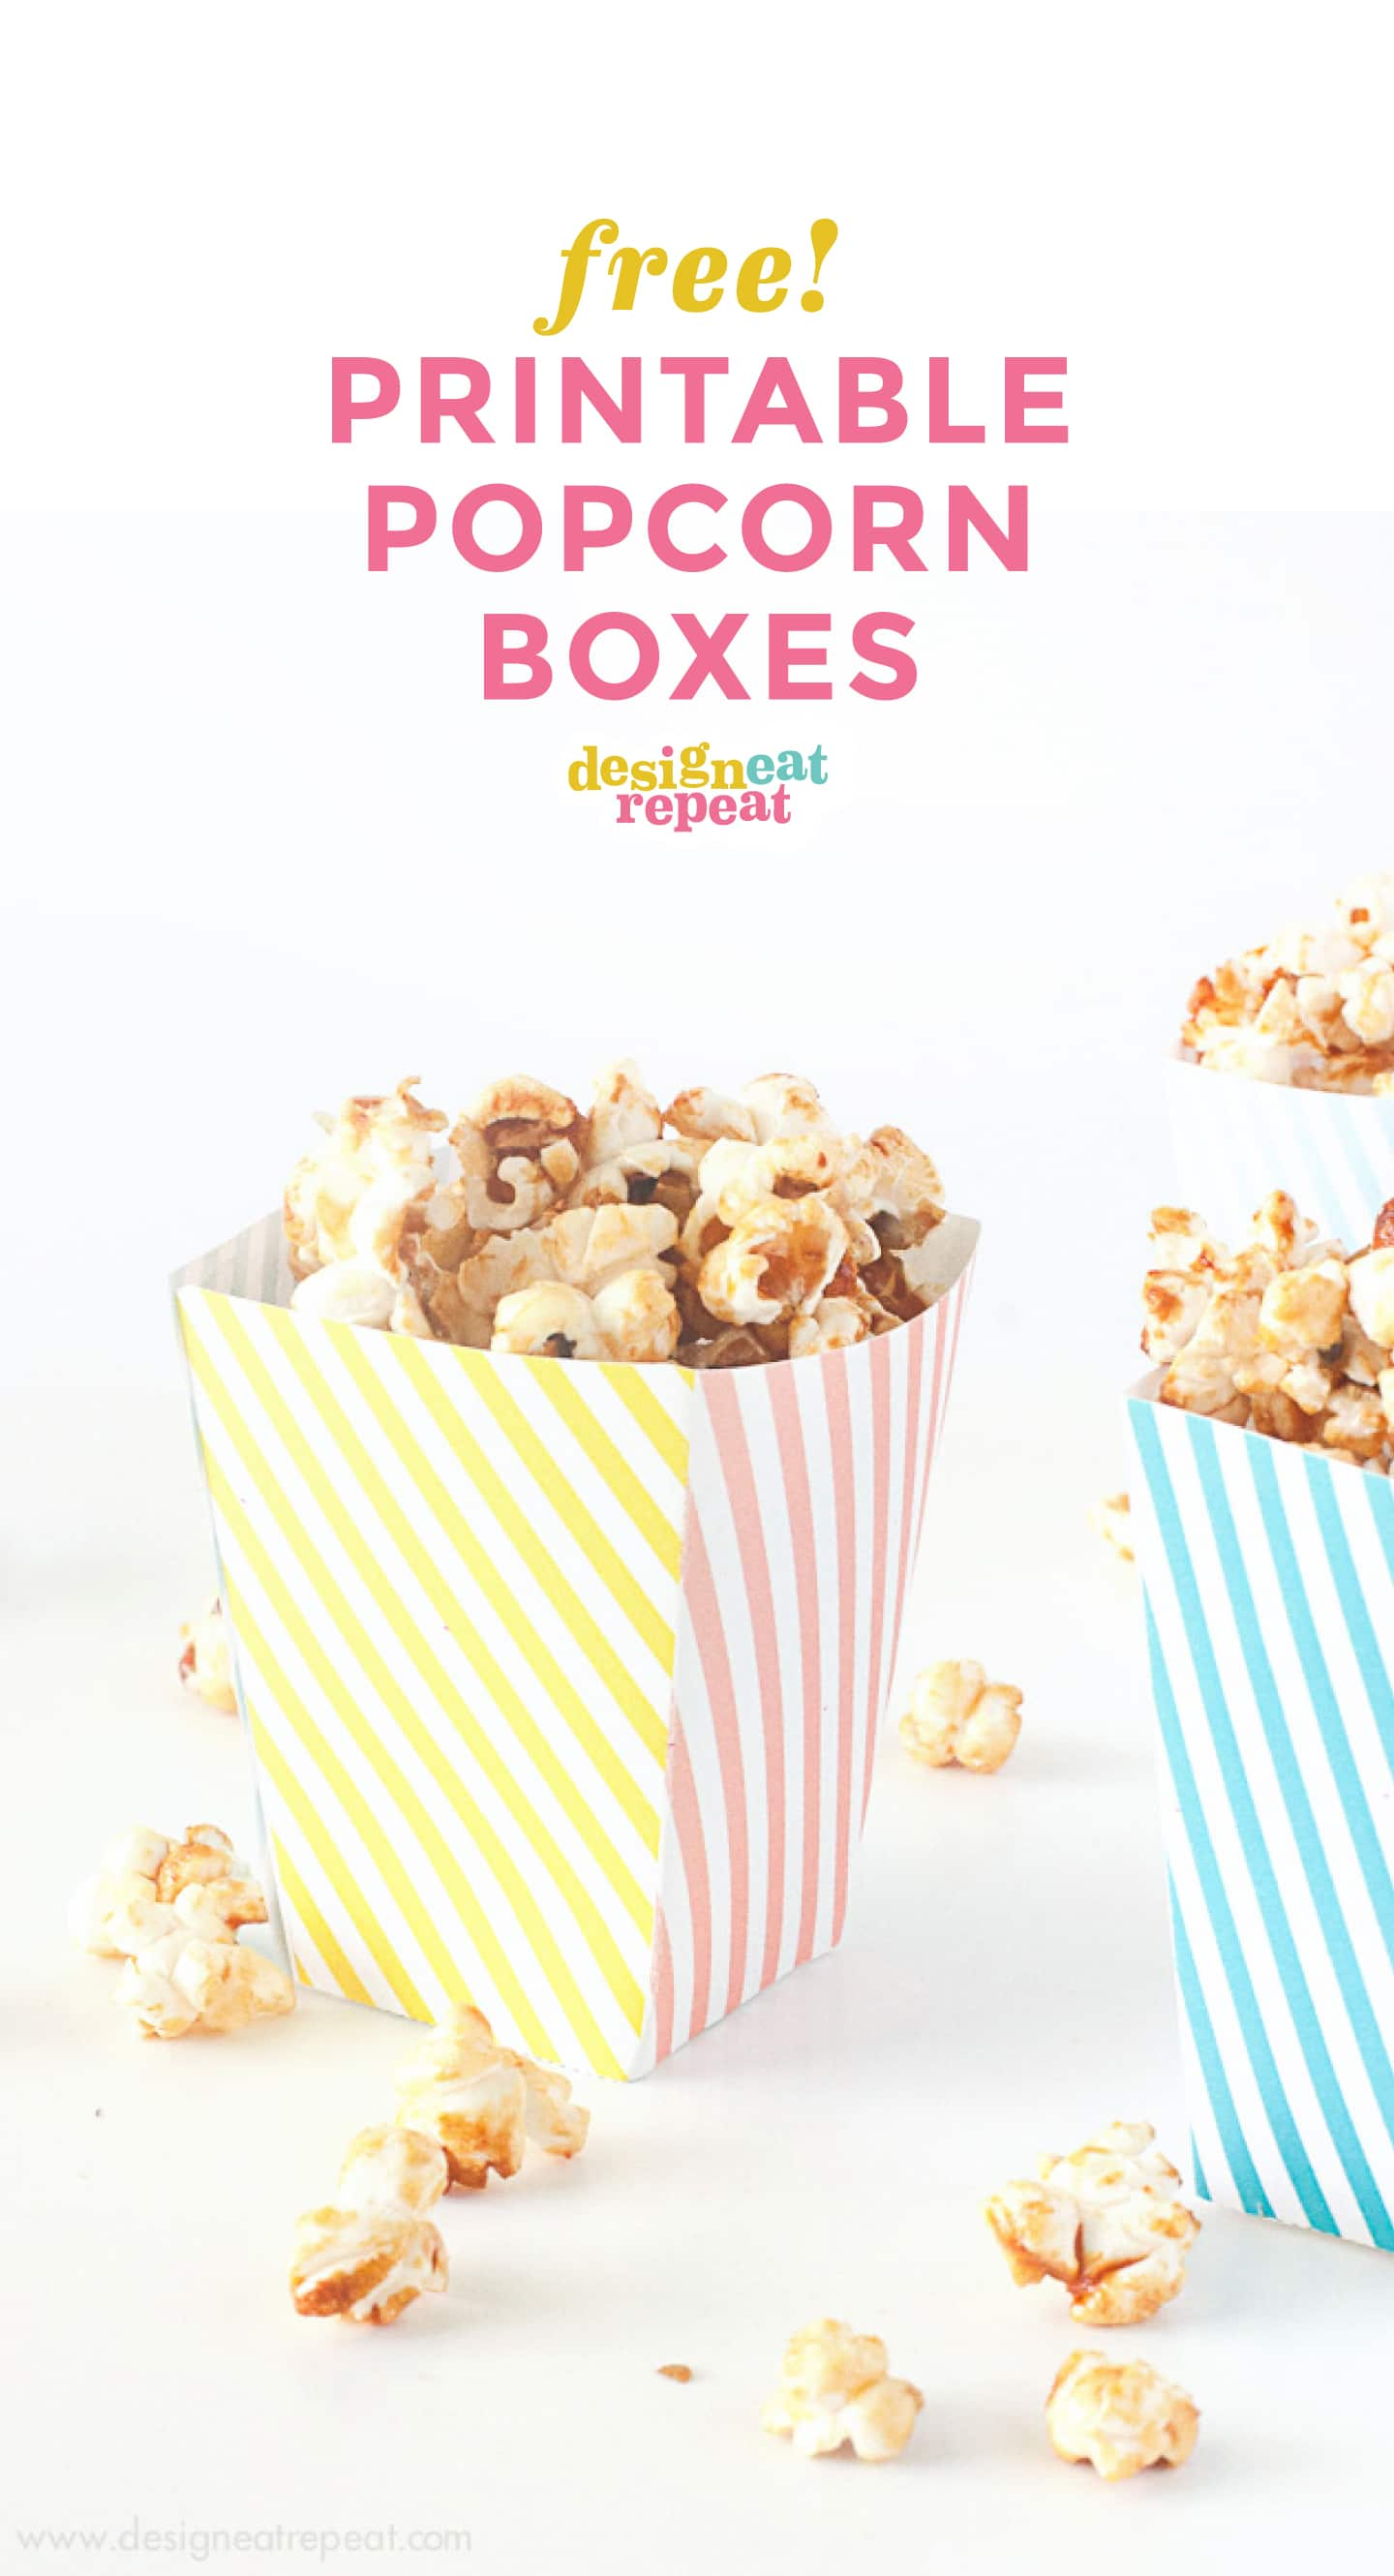 image relating to Popcorn Box Printable referred to as Totally free Printable Popcorn Box Template - Structure Try to eat Repeat